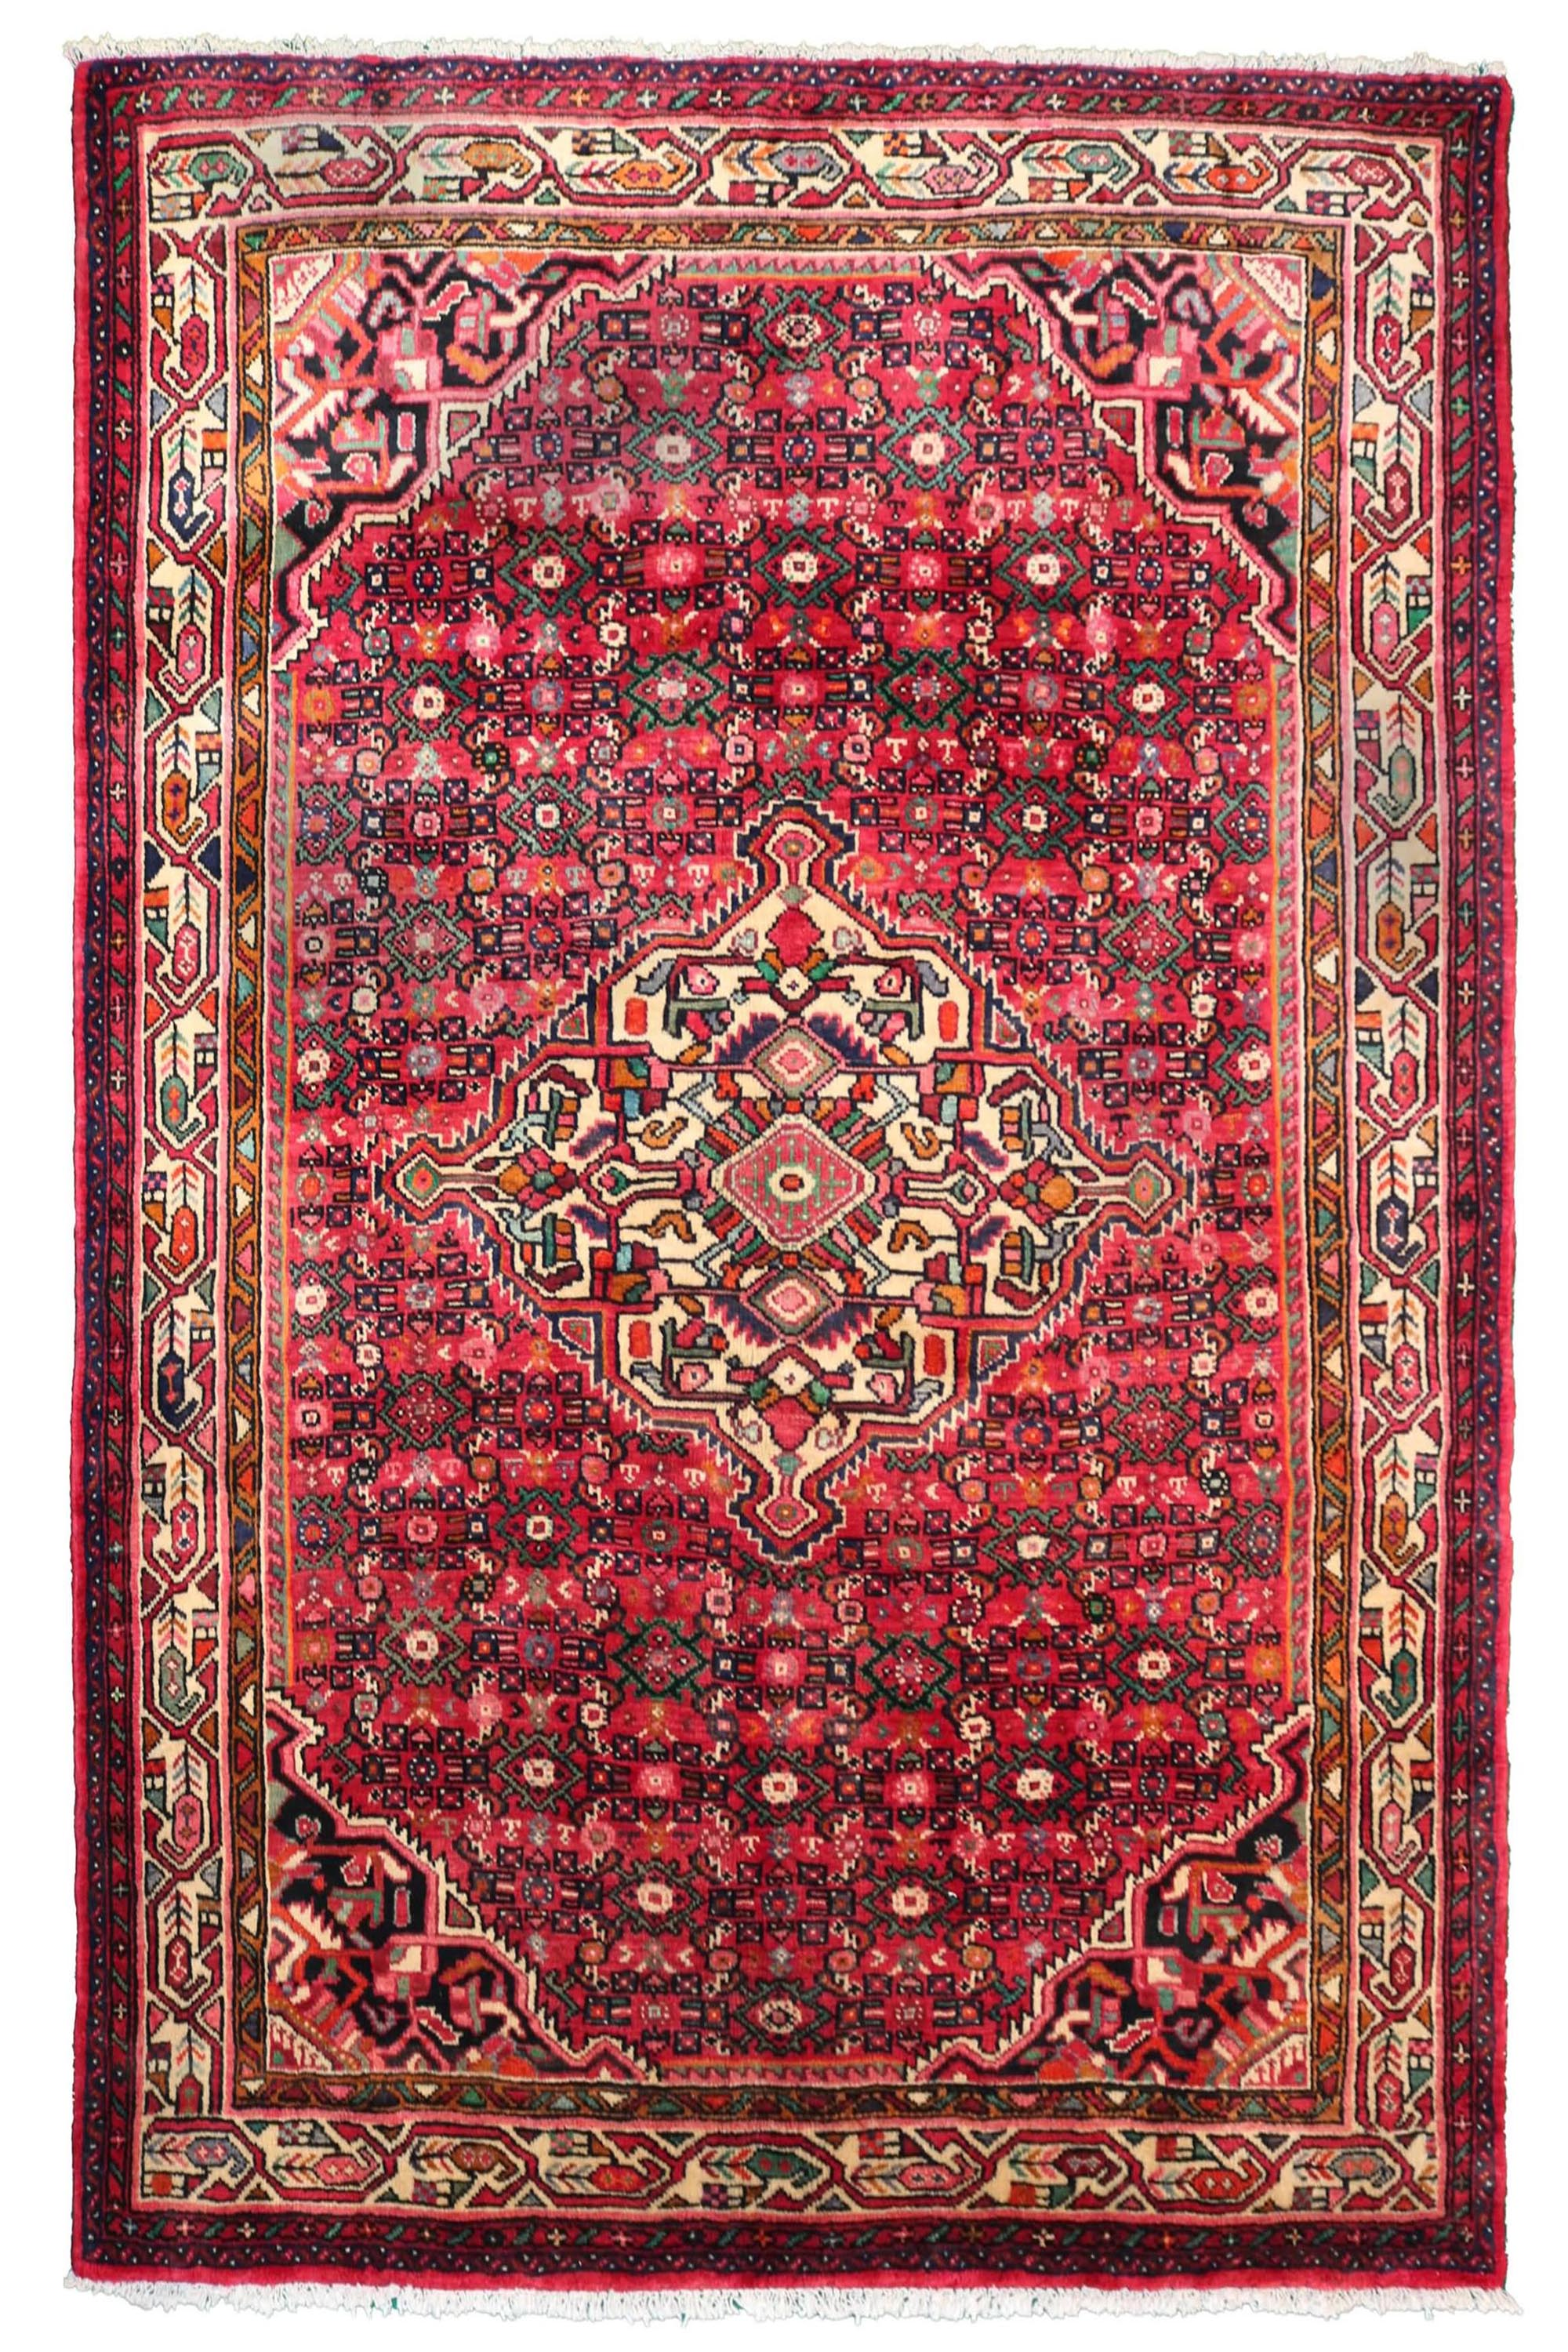 Hand Knotted Vintage Hamadan Persian Rug, 160 x 207 cm